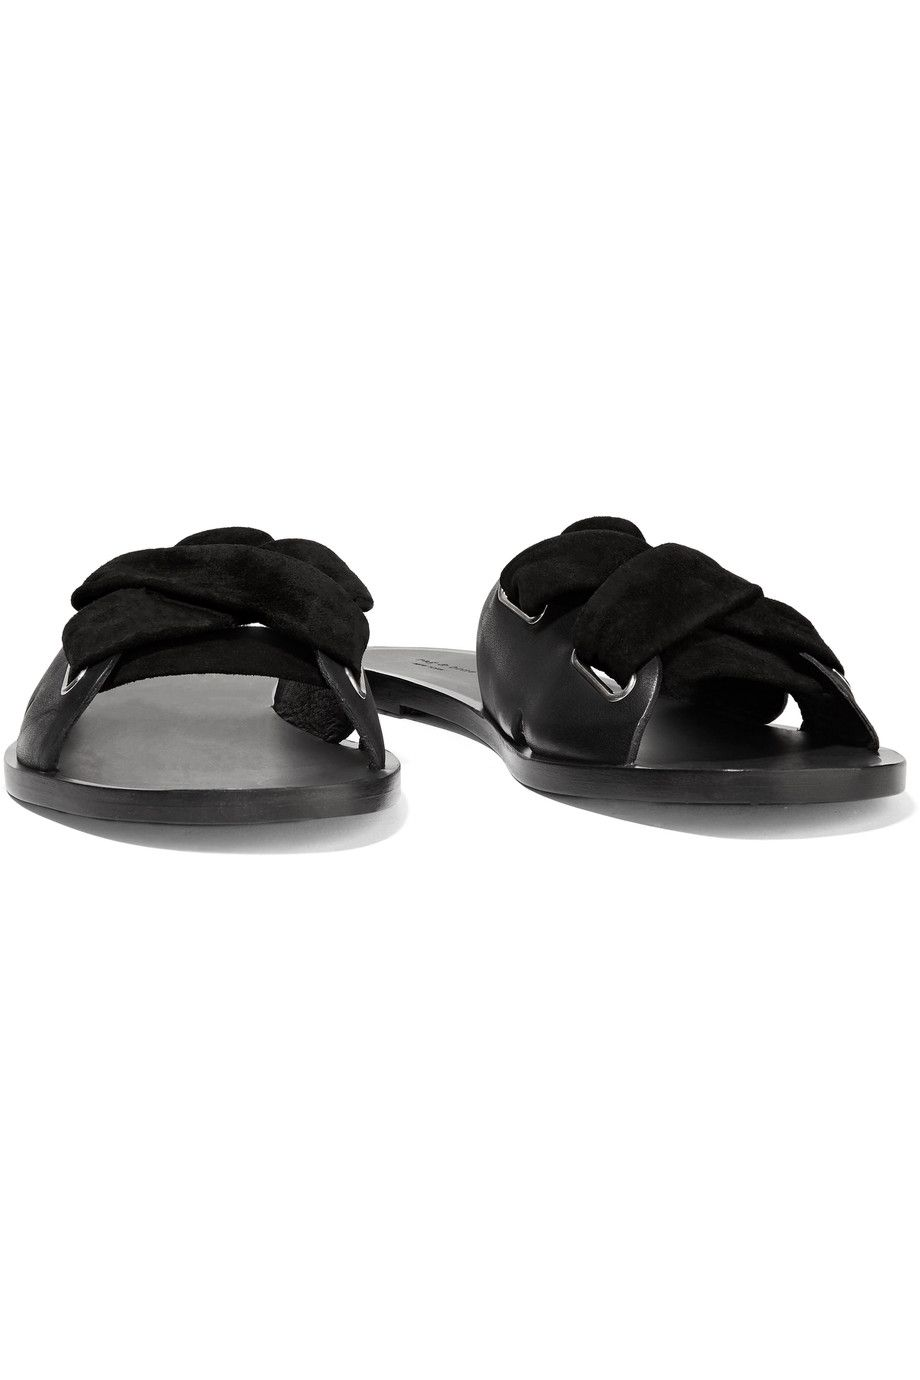 Rag and Bone Rag & Bone Leather Nora Sandals VuVQCPR